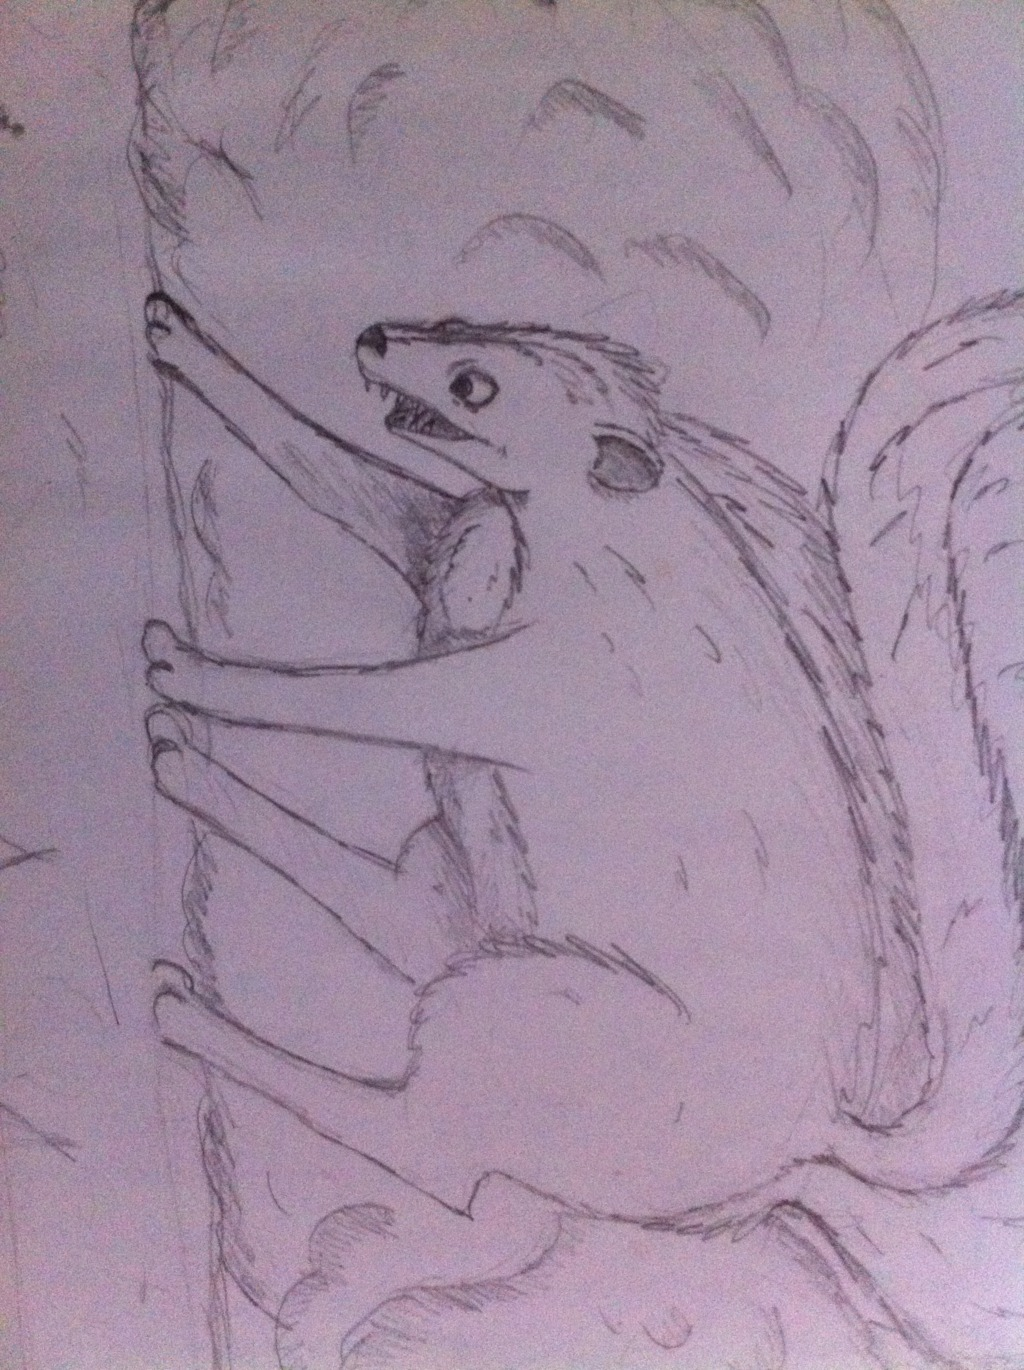 Most recent image: The Monster Skunk that Farted Everyone to Death